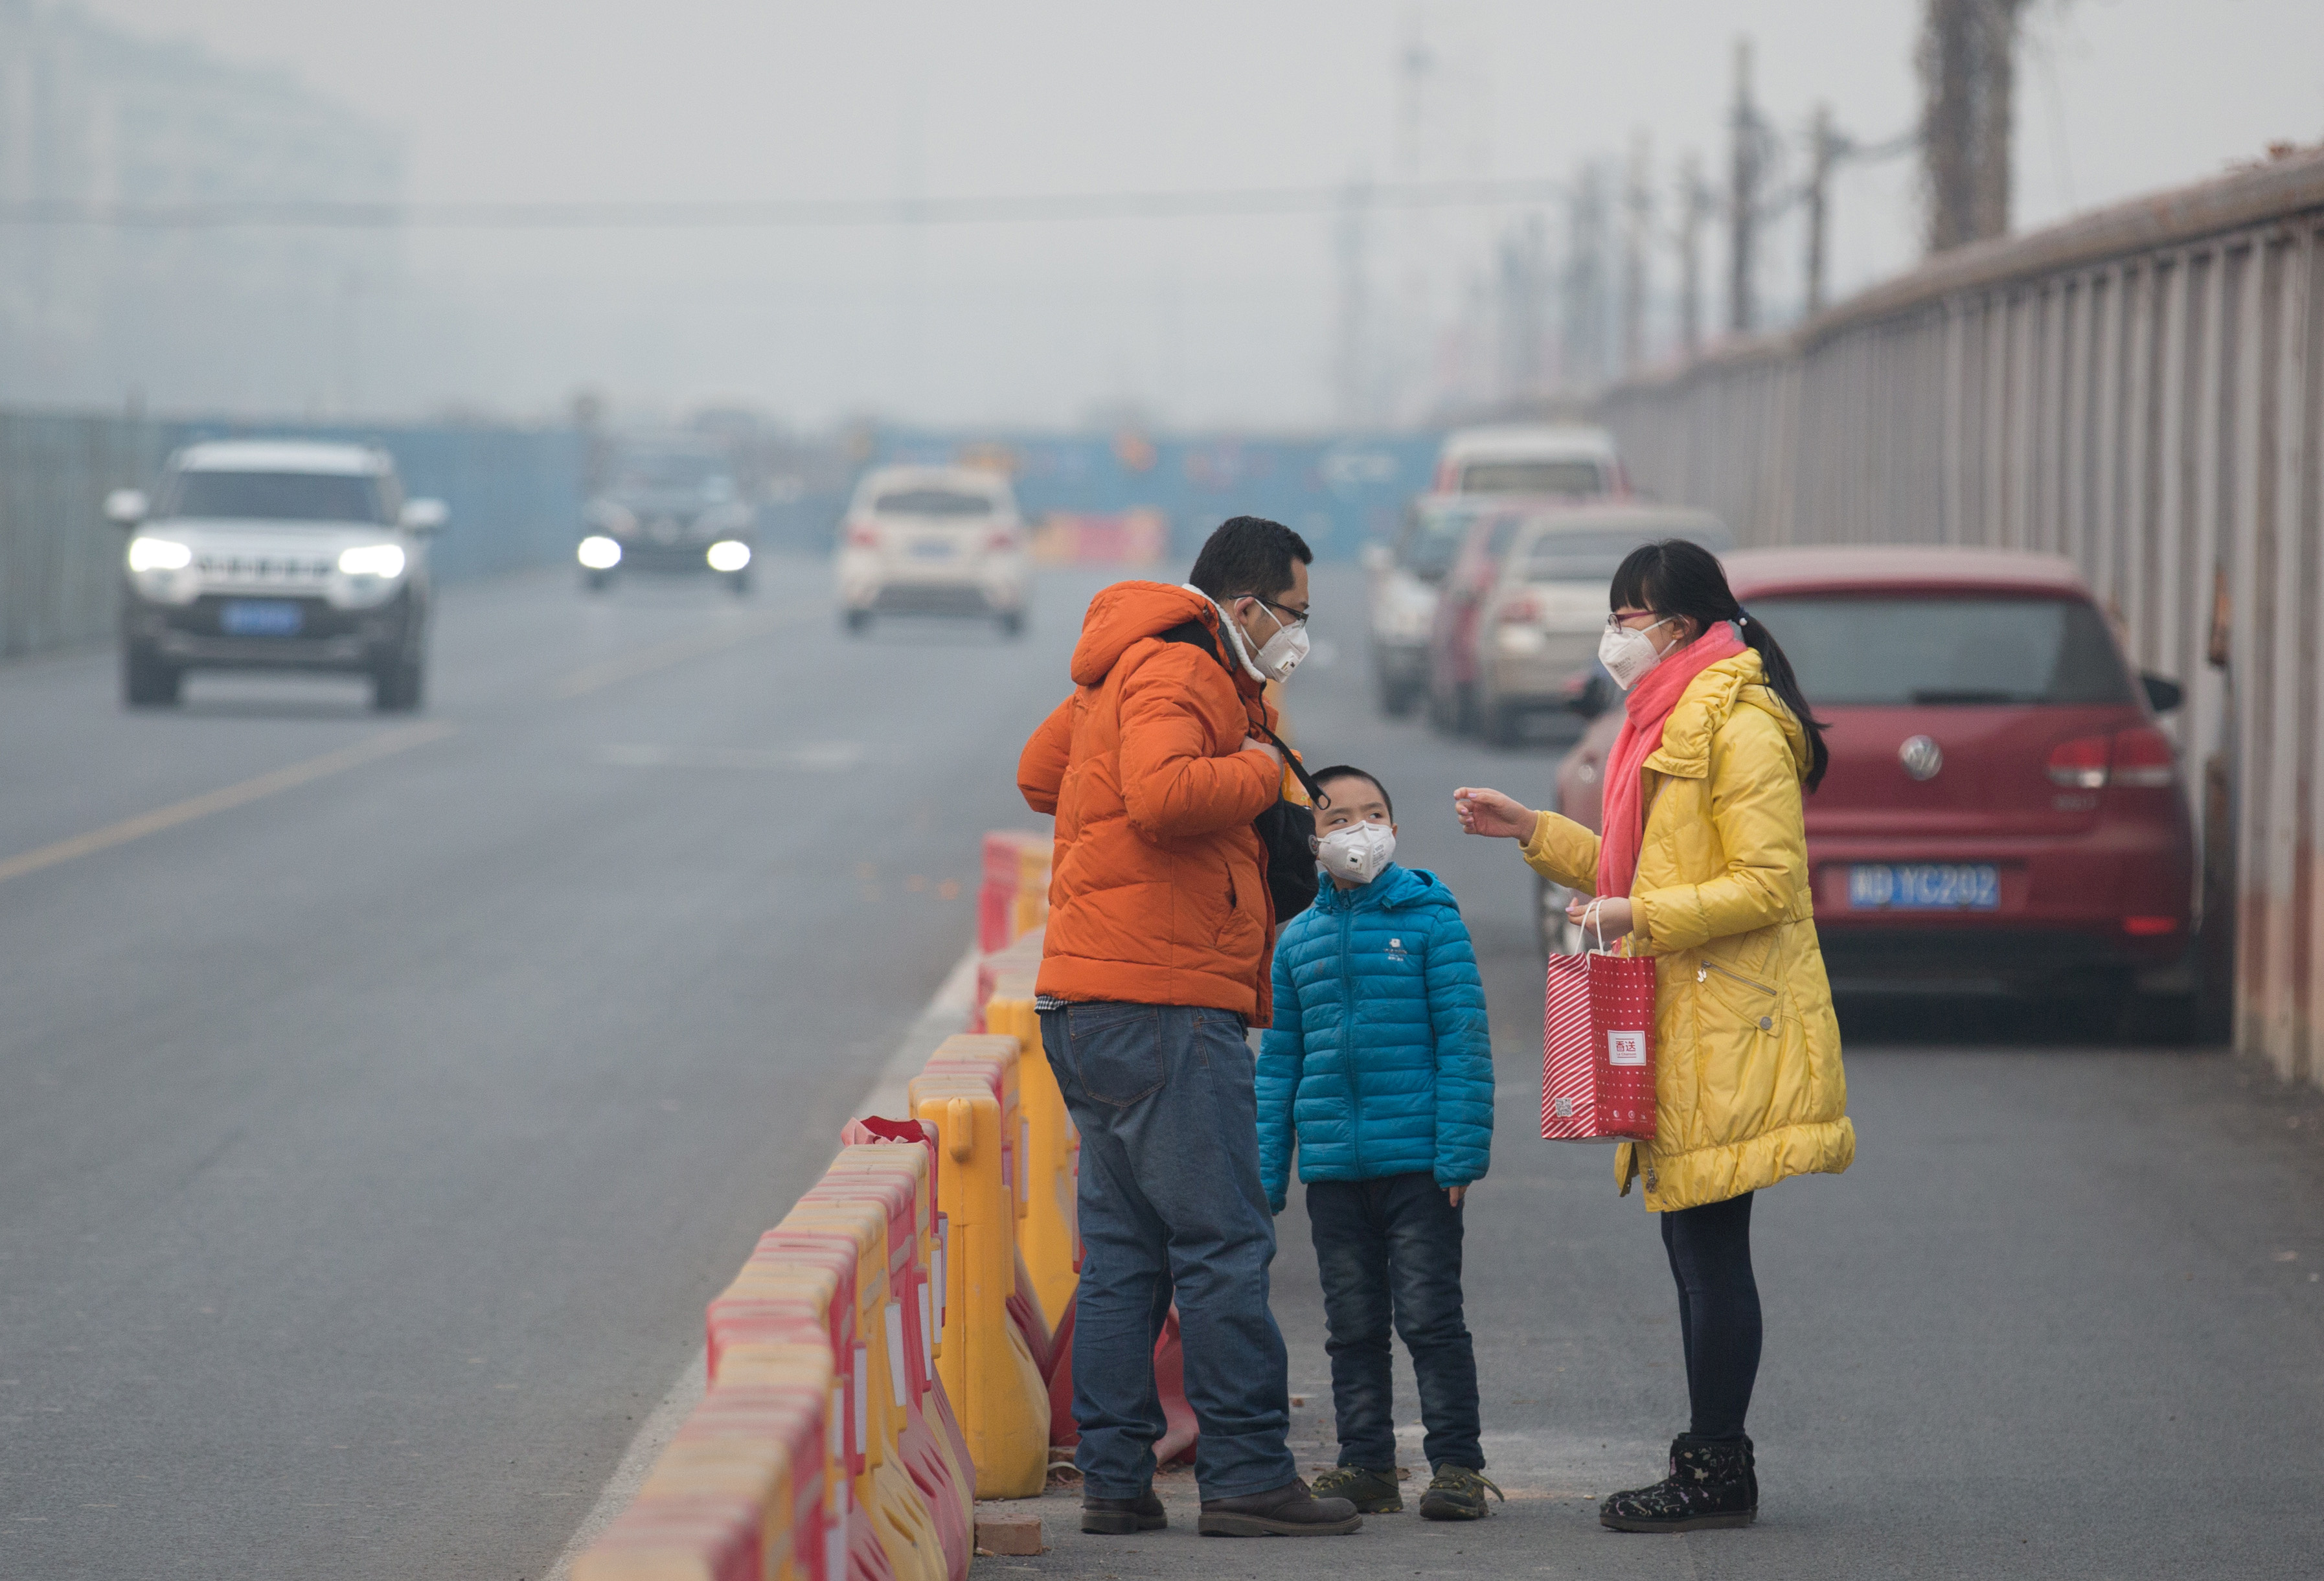 People wearing masks stand in smog during a heavily polluted day in Beijing, China, December 17, 2016. Picture taken December 17, 2016. China Daily/via REUTERS ATTENTION EDITORS - THIS PICTURE WAS PROVIDED BY A THIRD PARTY. EDITORIAL USE ONLY. CHINA OUT. NO COMMERCIAL OR EDITORIAL SALES IN CHINA. - RTX2VHZM